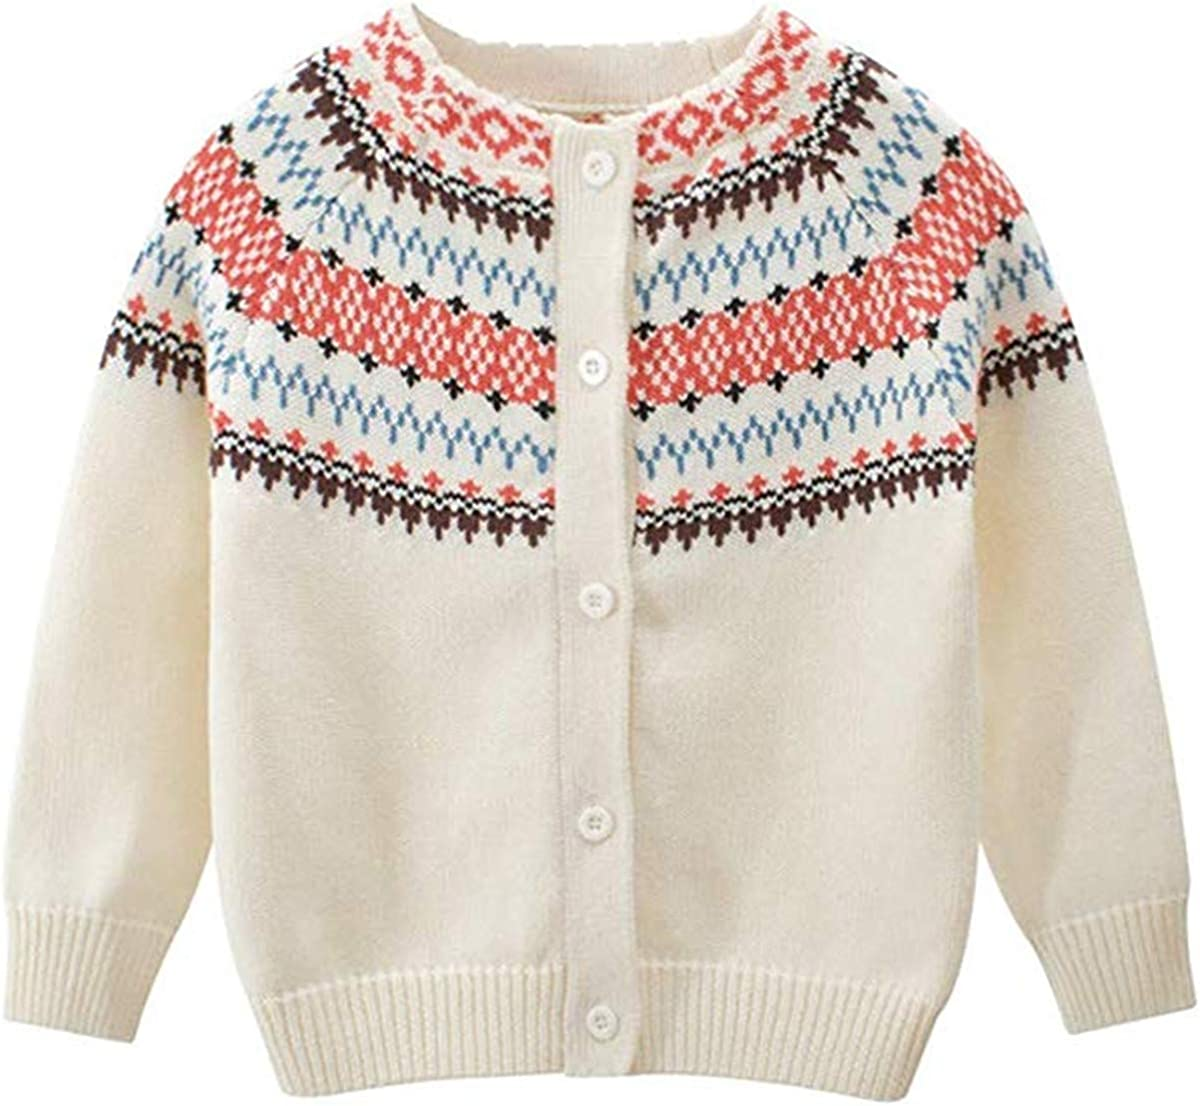 Newborn Infant Unisex Baby Girls Boys Warm Sweater Long Sleeve Knitted Blouse Pullover Sweatshirt Tops Fall Clothes